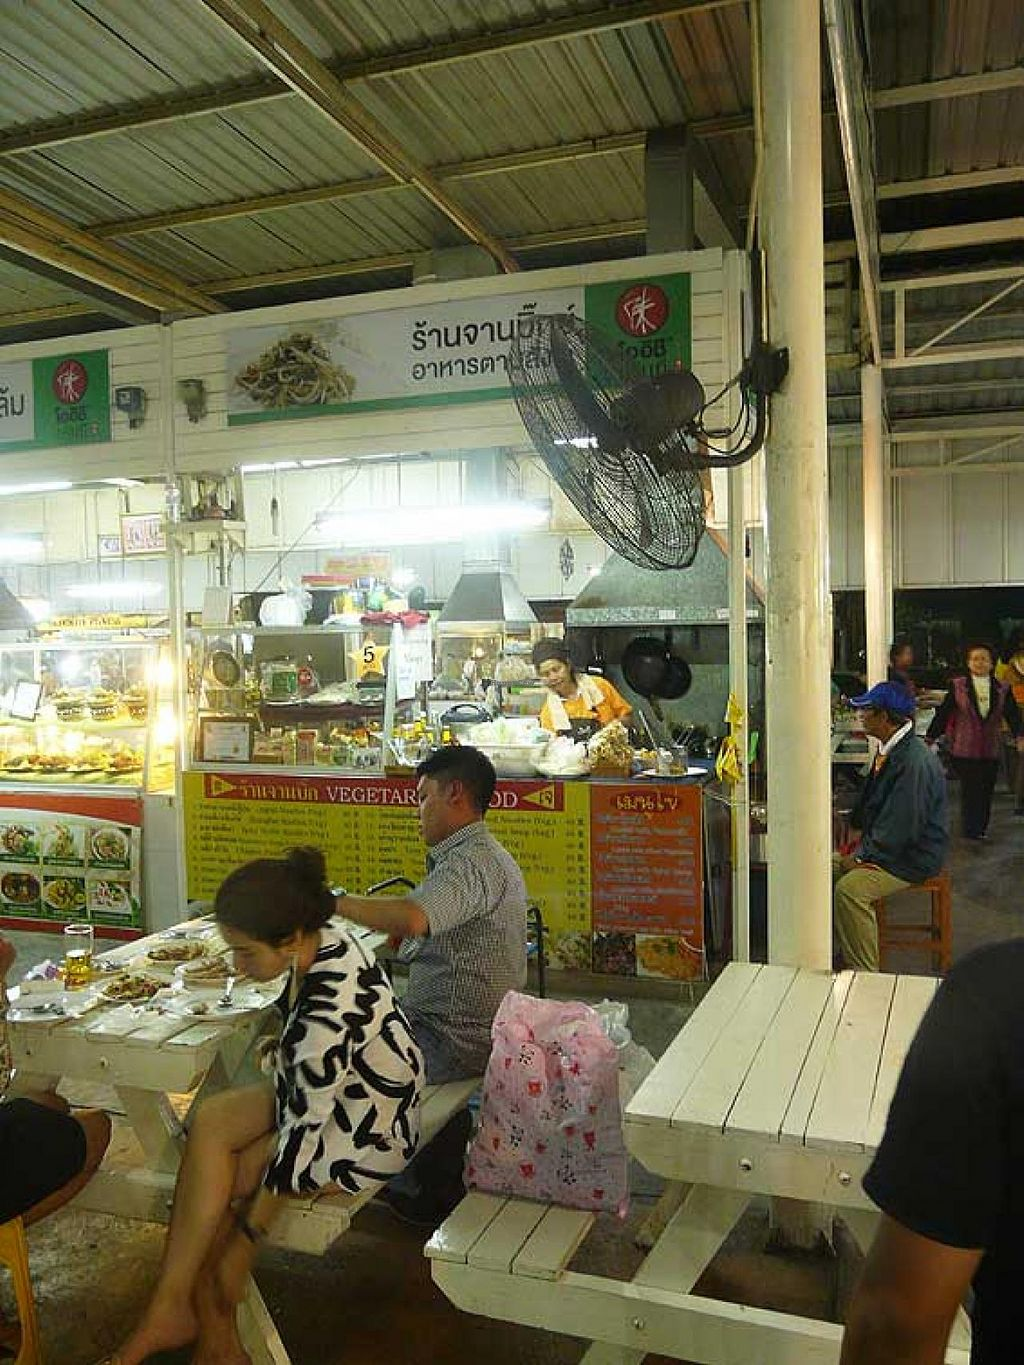 """Photo of CLOSED: Vegetarian Food Stall  by <a href=""""/members/profile/The%20Hammer"""">The Hammer</a> <br/>The Jay food stall is located at one of the corners of the food court <br/> January 19, 2014  - <a href='/contact/abuse/image/44619/62749'>Report</a>"""